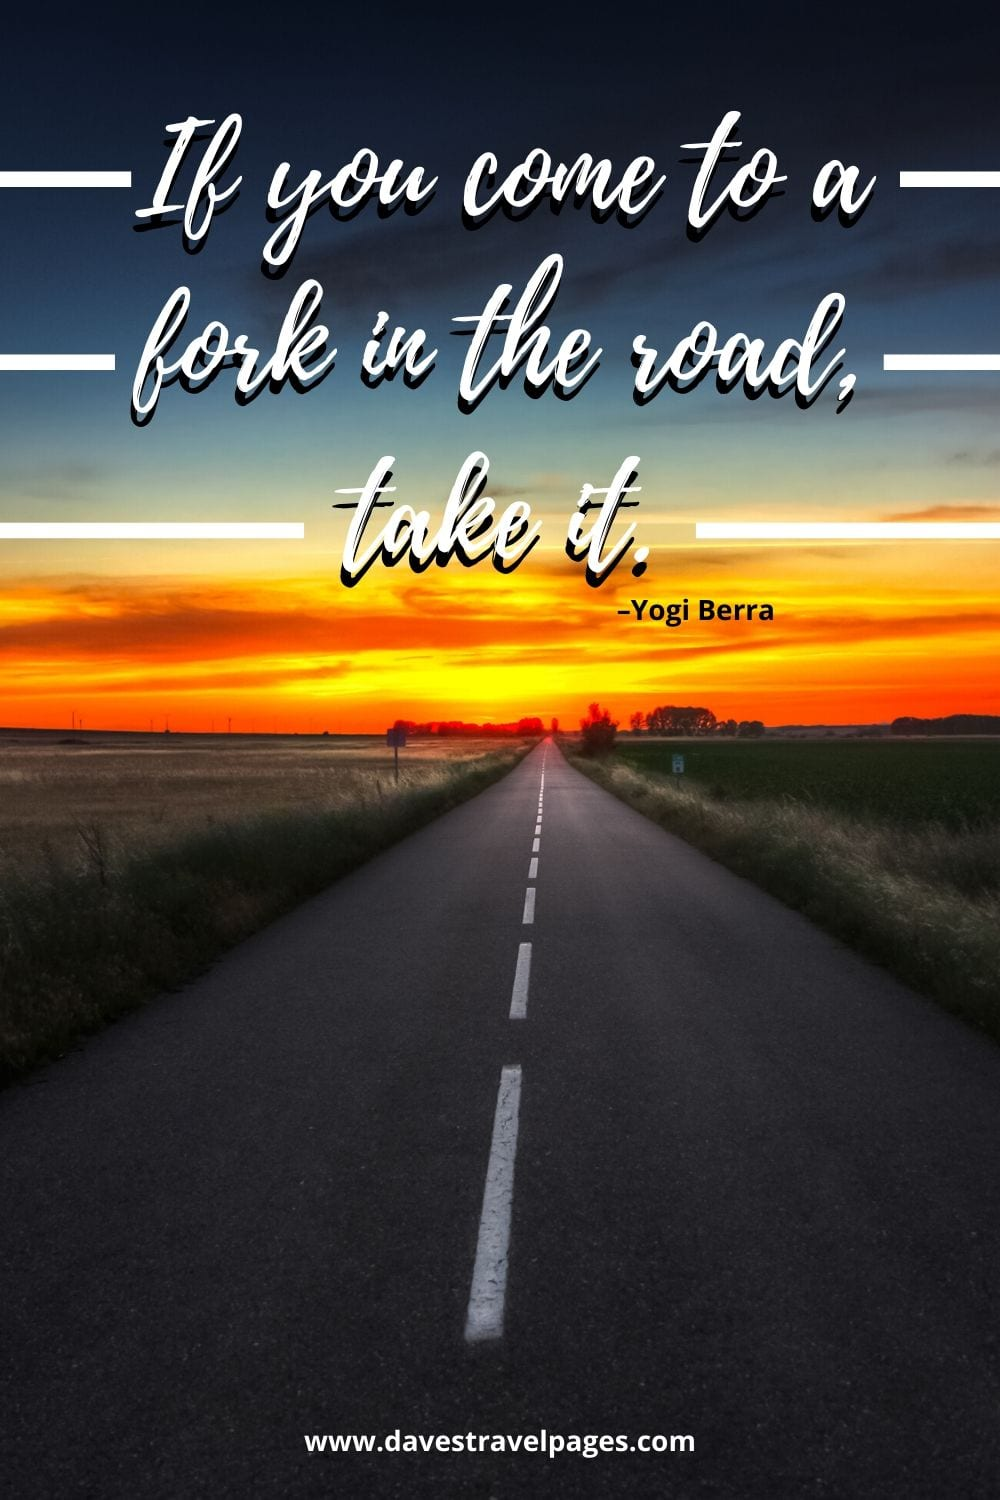 """Road trip quotes: """"If you come to a fork in the road, take it."""" –Yogi Berra"""